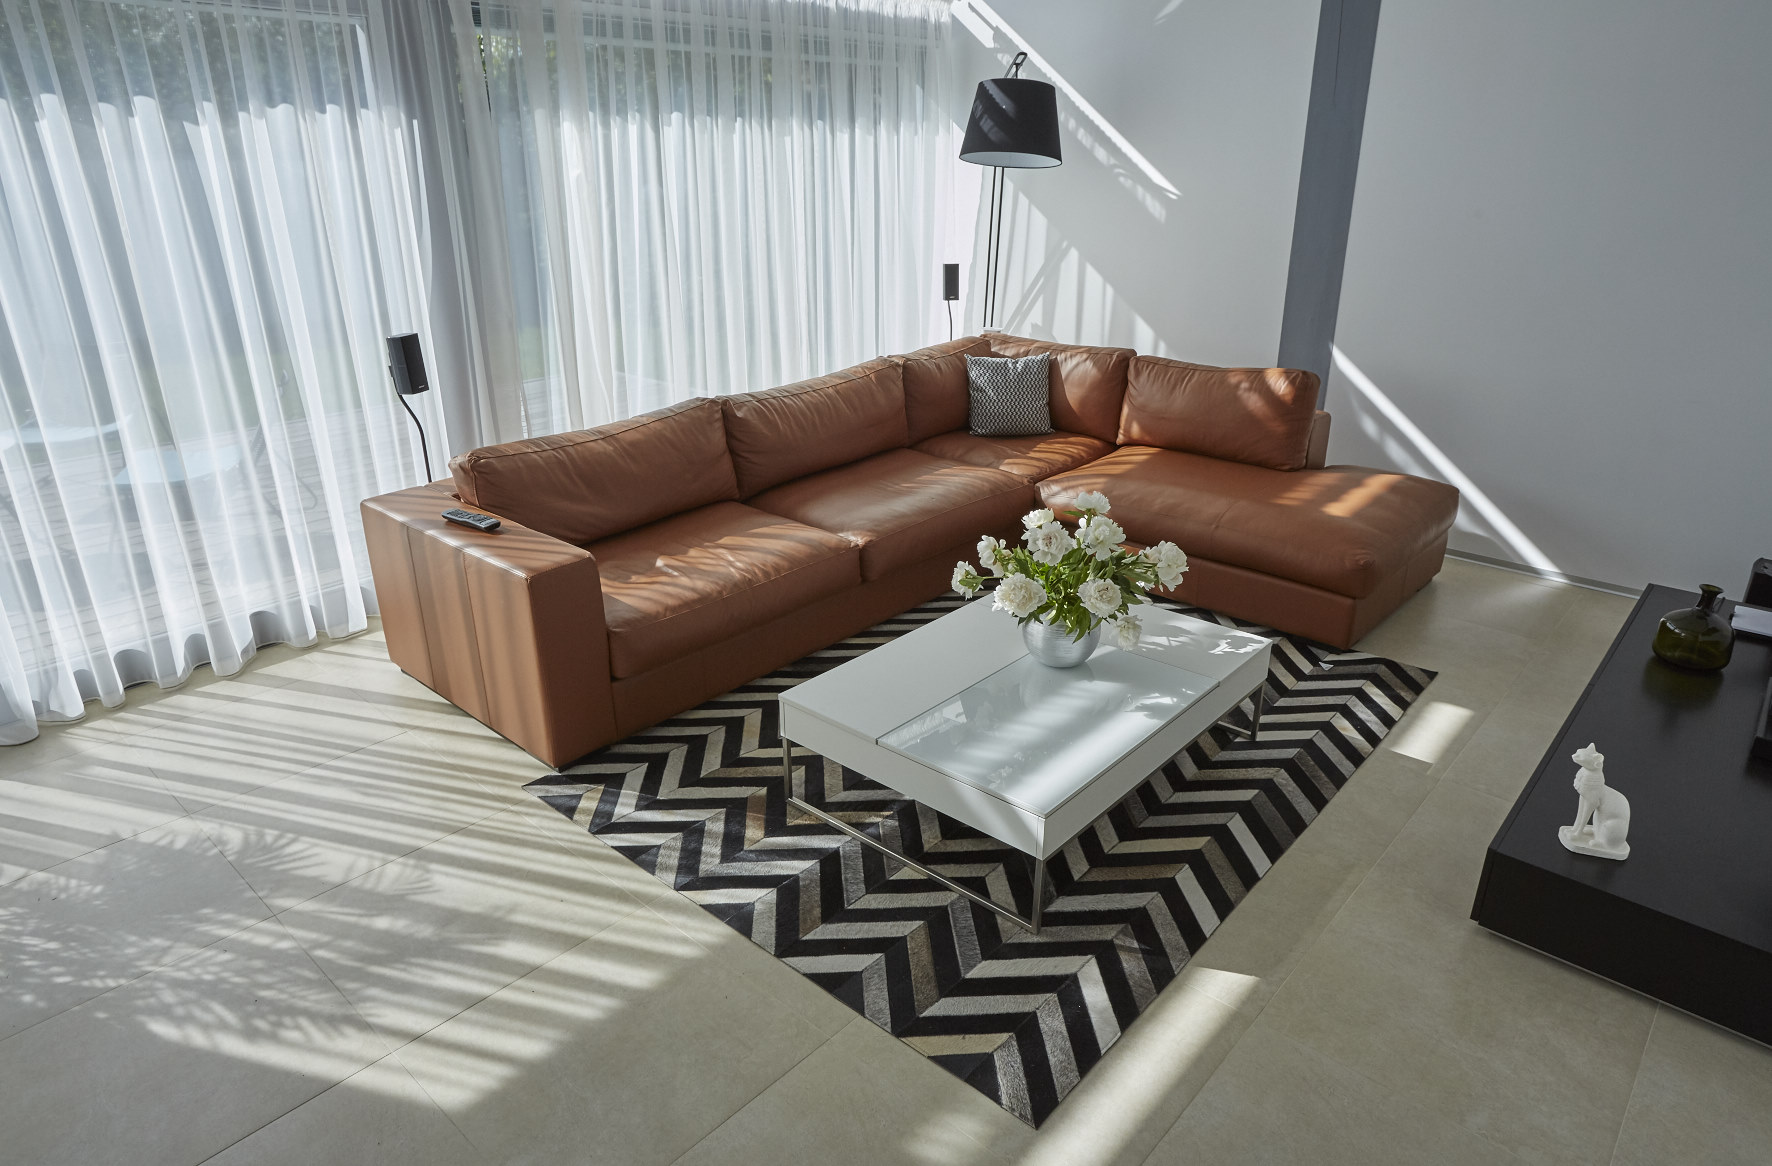 Light brown sofa in the interior